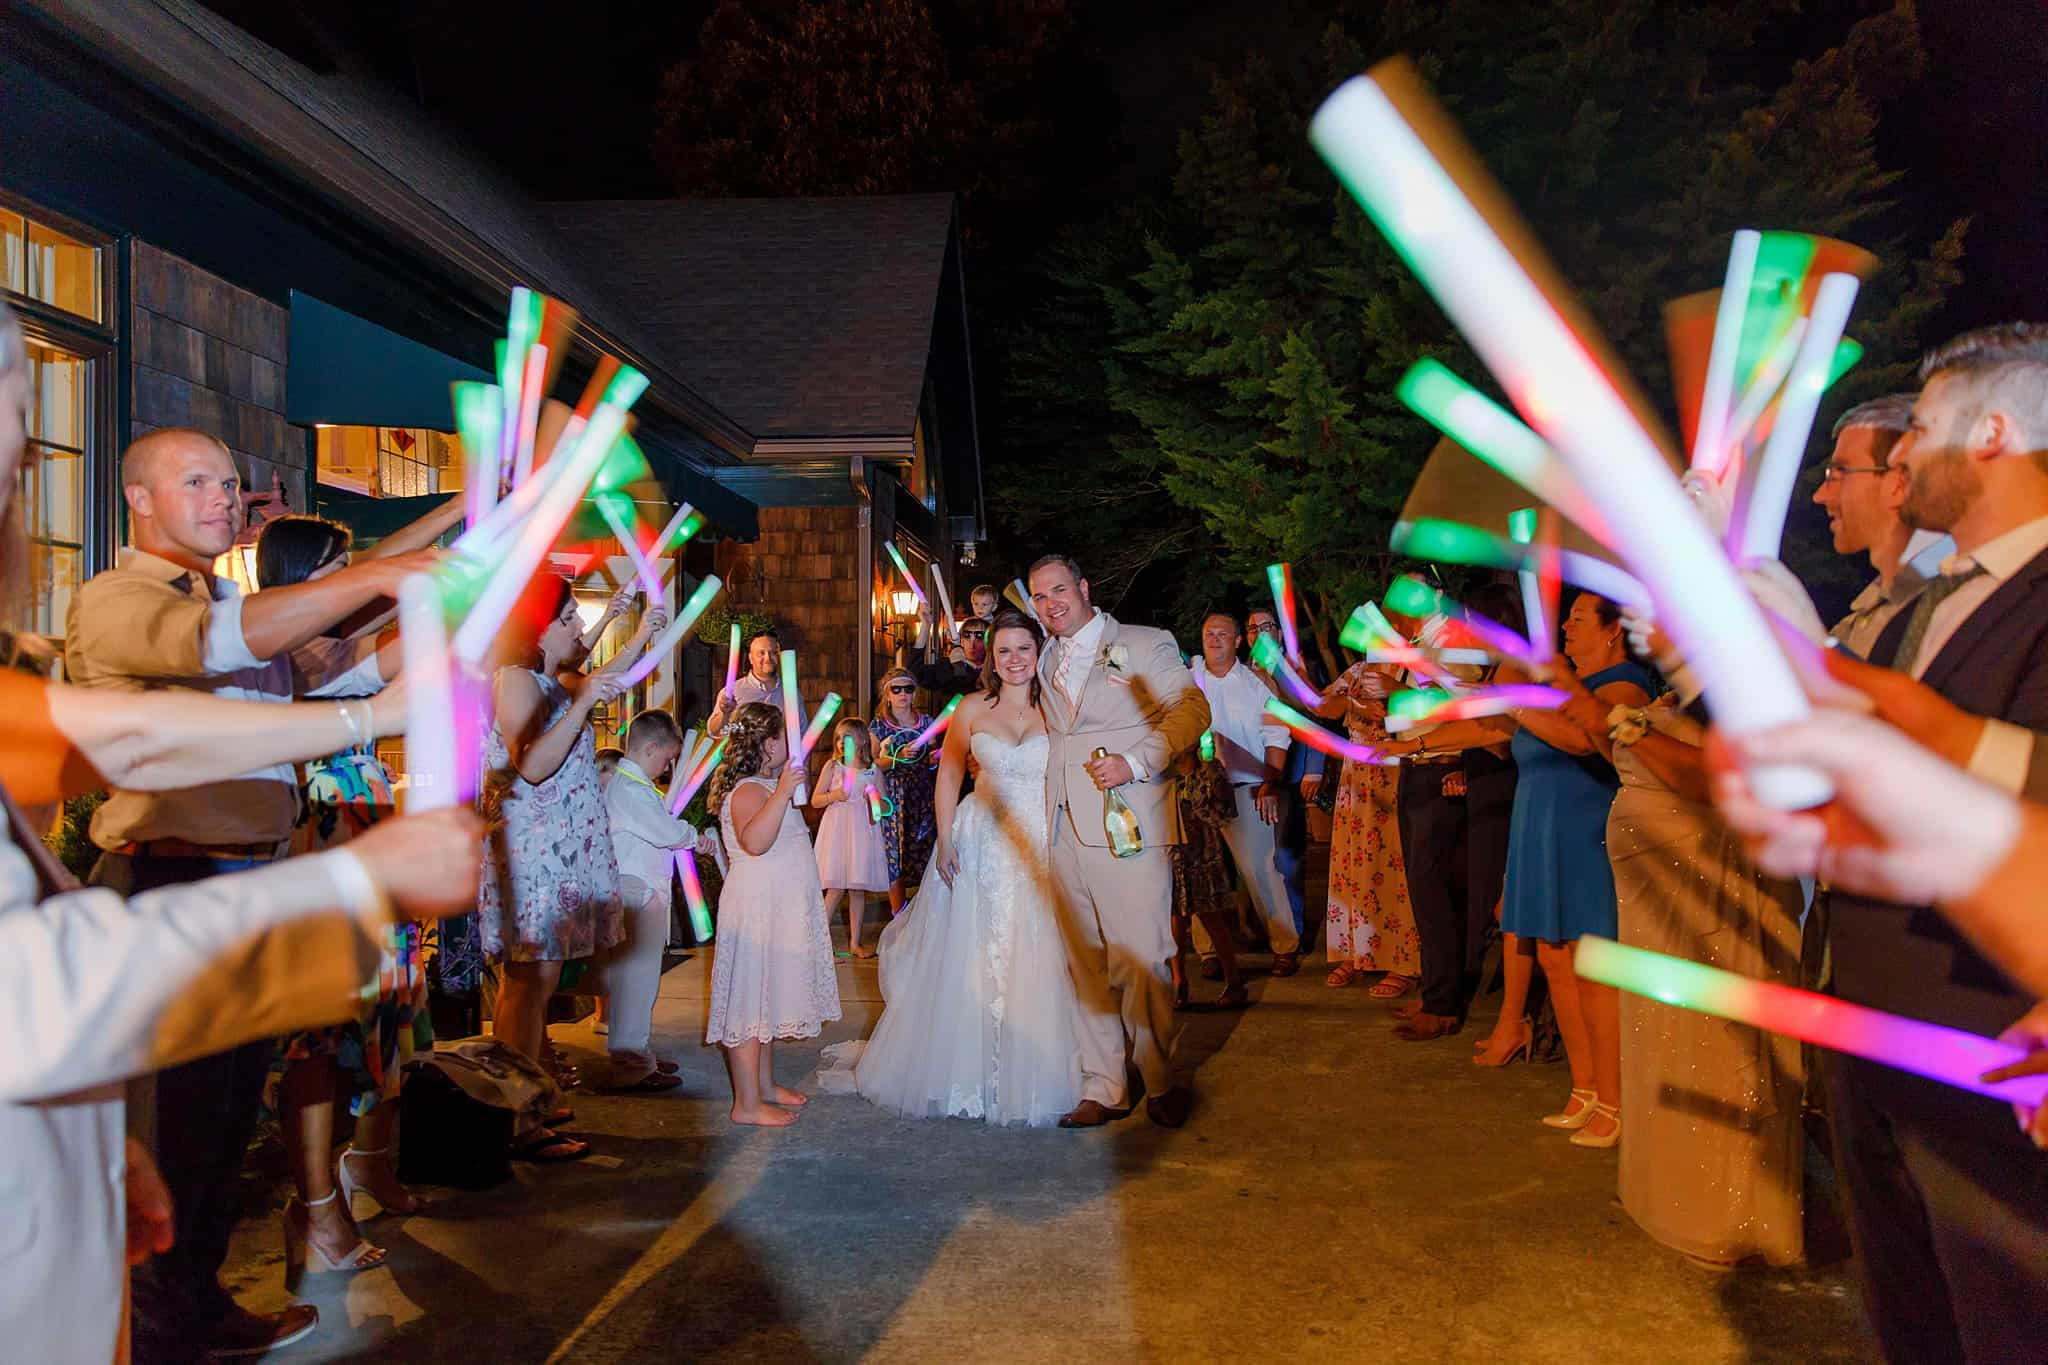 Bride and Groom departing wedding at night with guests holding brightly colored glowsticks